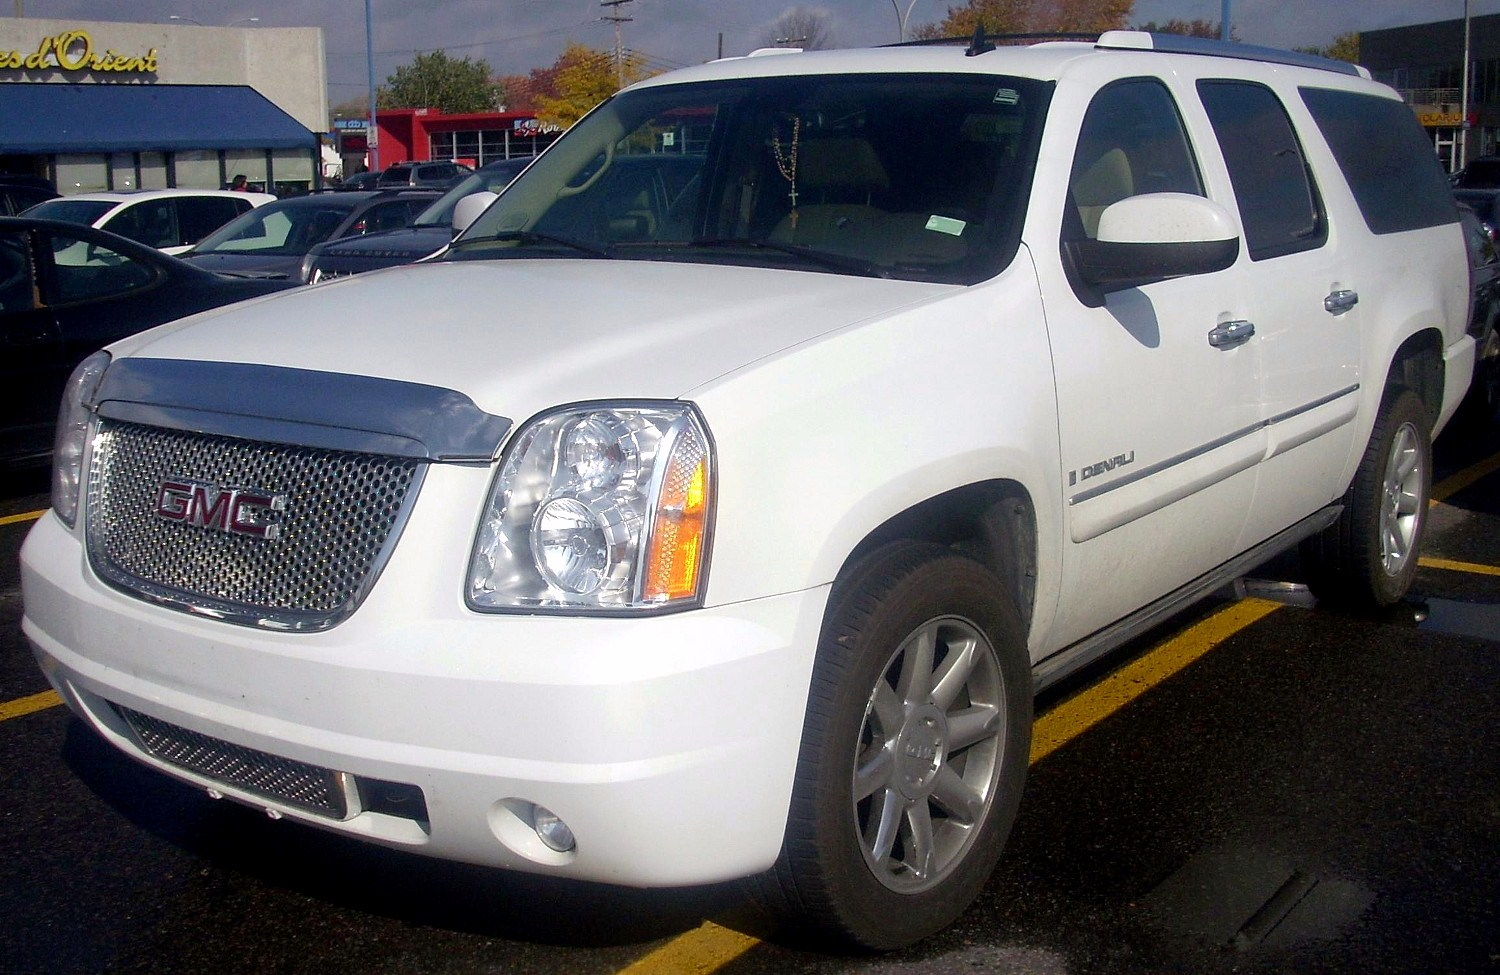 gmc yukon (gmt900) 2009 pictures